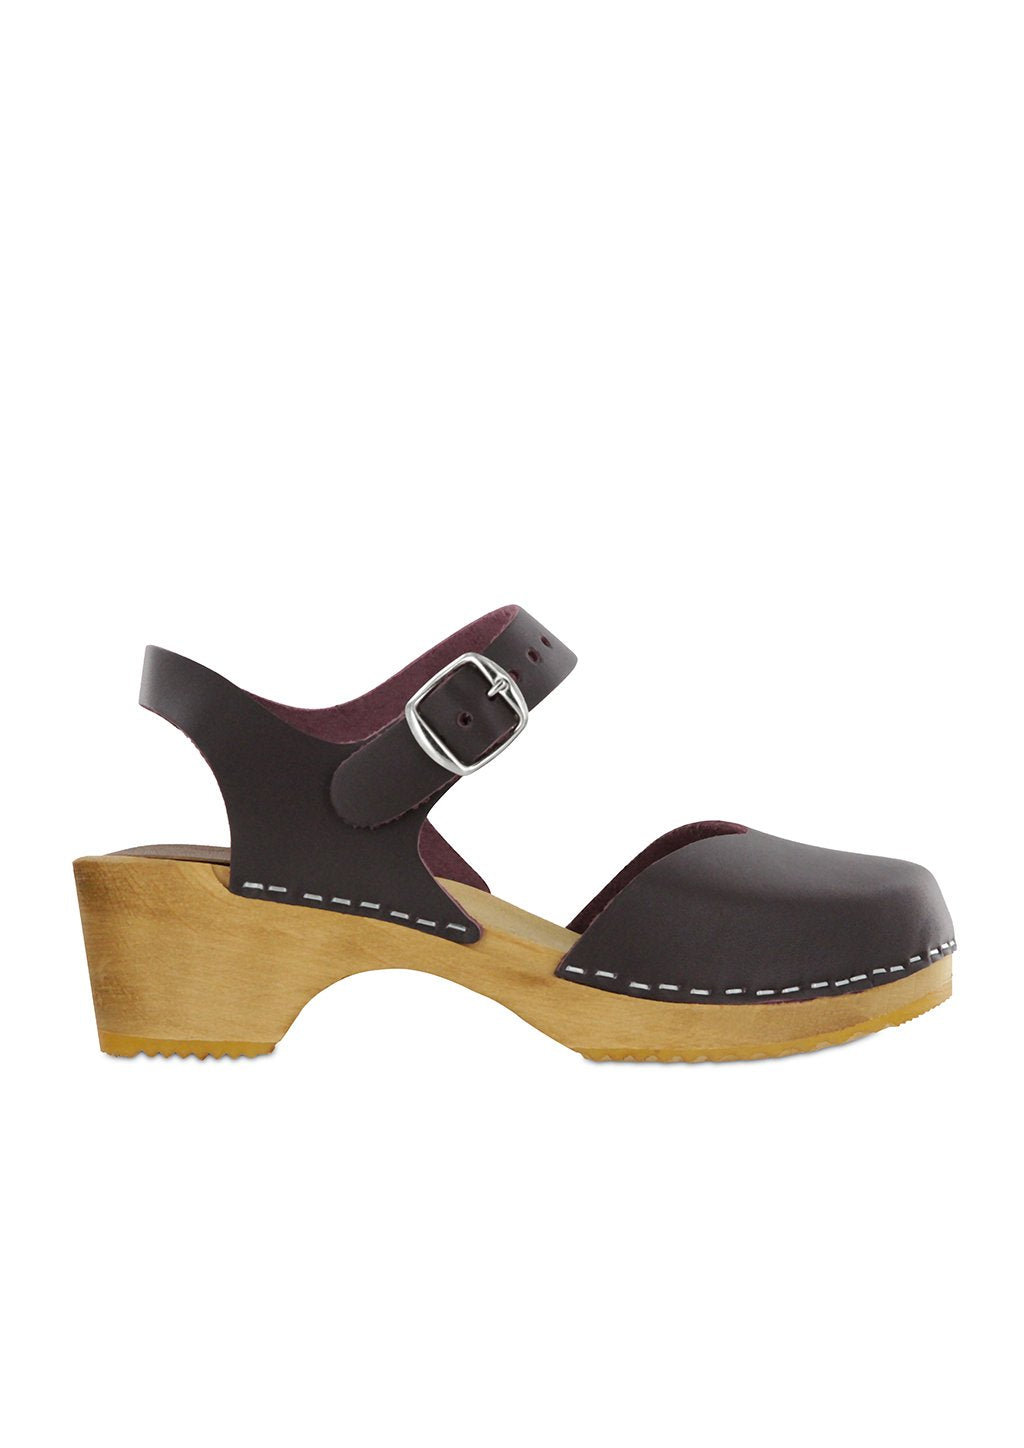 Mia Women's Sofia Sandal Wine Leather